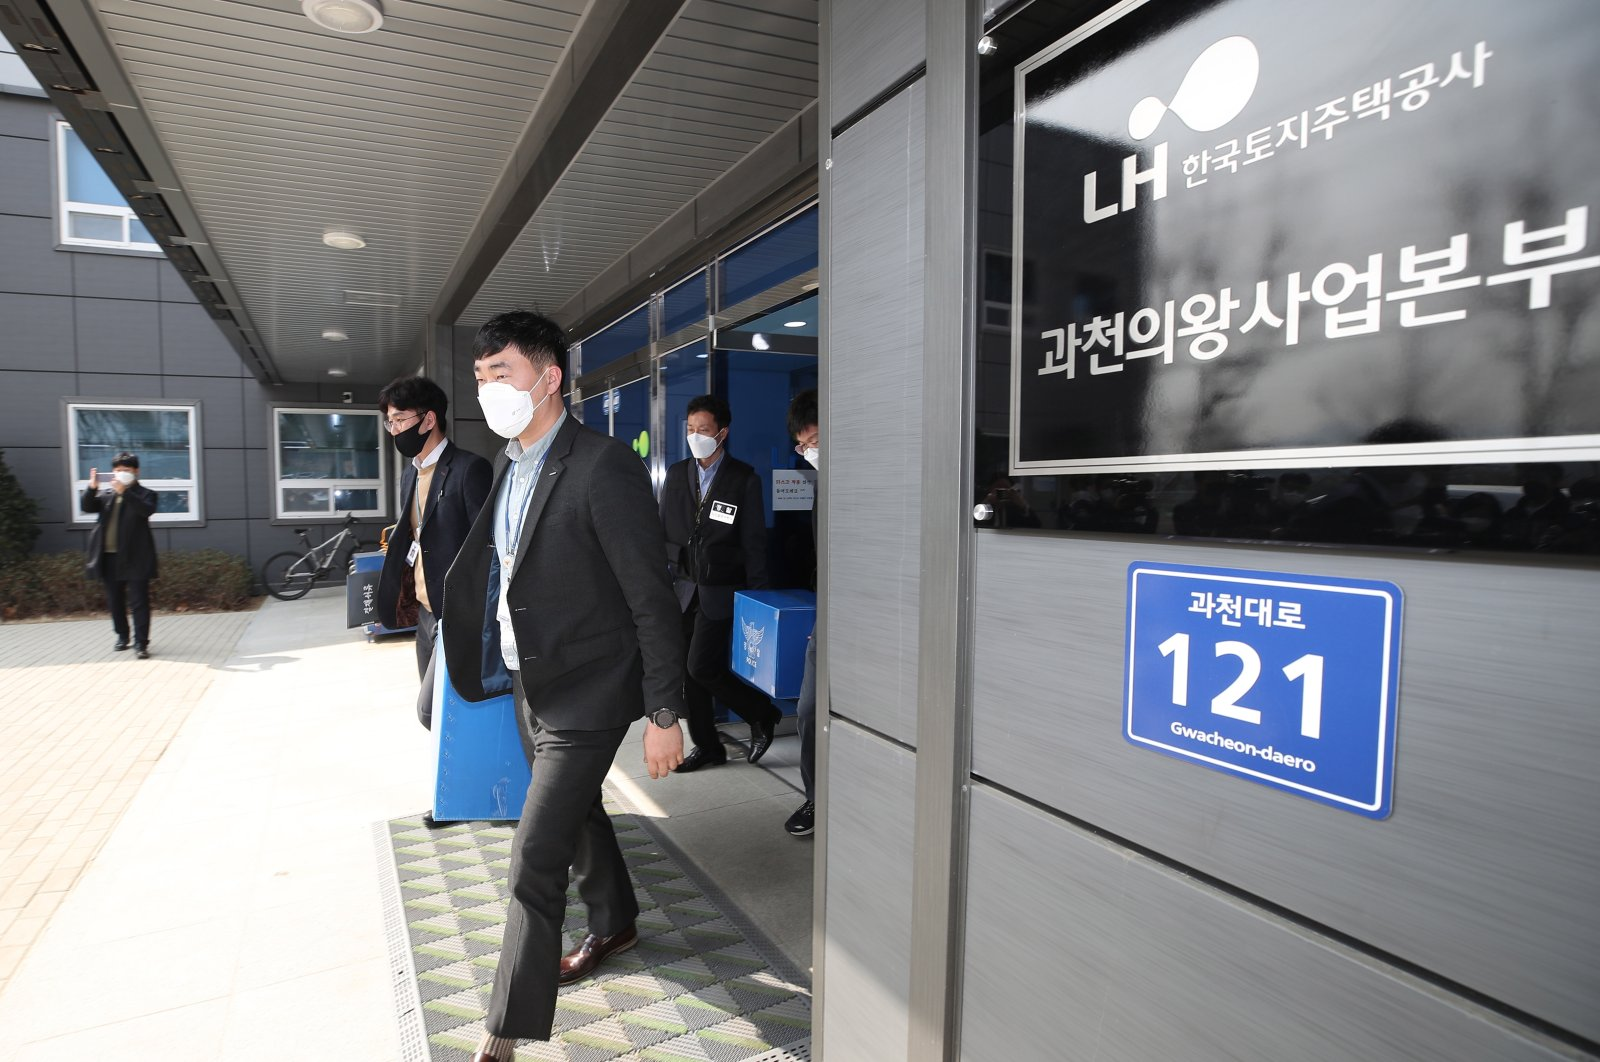 Police investigators carry boxes containing confiscated items out of an office of the state-run Korea Land and Housing Corp. (LH) in Gwacheon, just south of Seoul, South Korea, March 9, 2021. (EPA Photo)